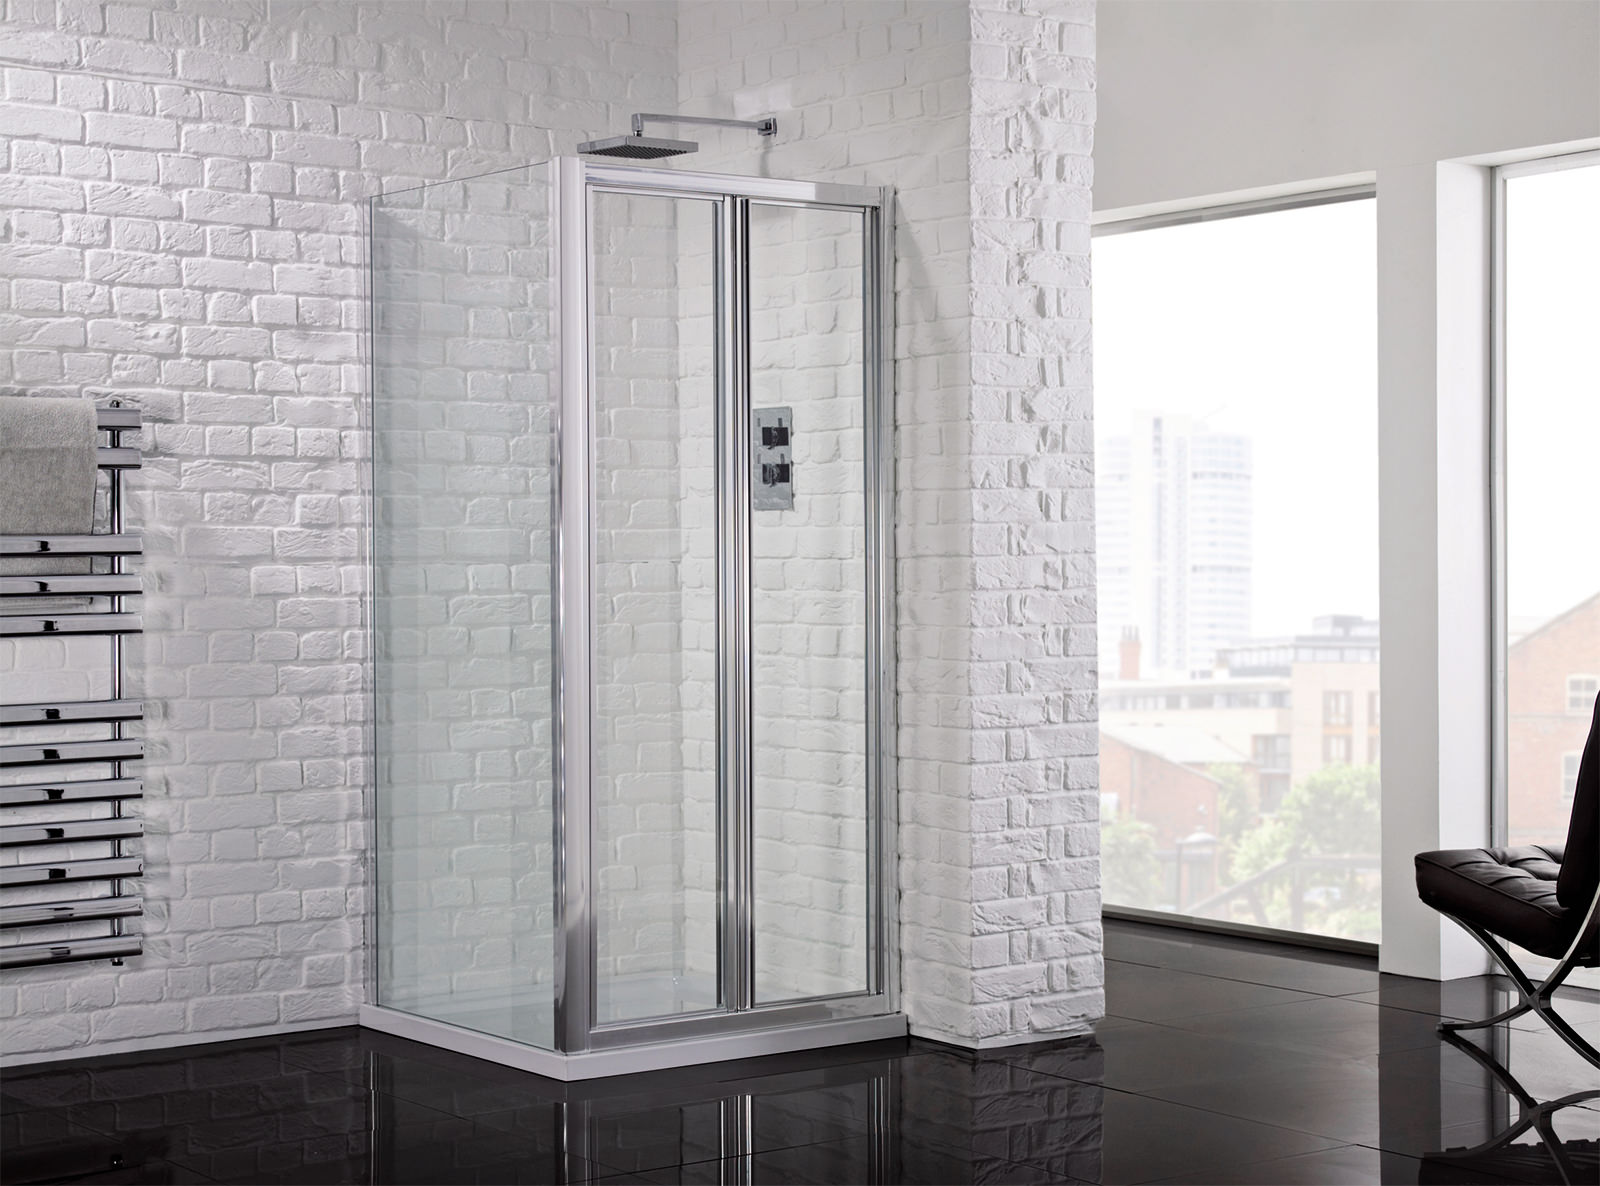 Aquadart venturi 6 1000mm framed bifold shower door aq9318s for 1000mm shower door